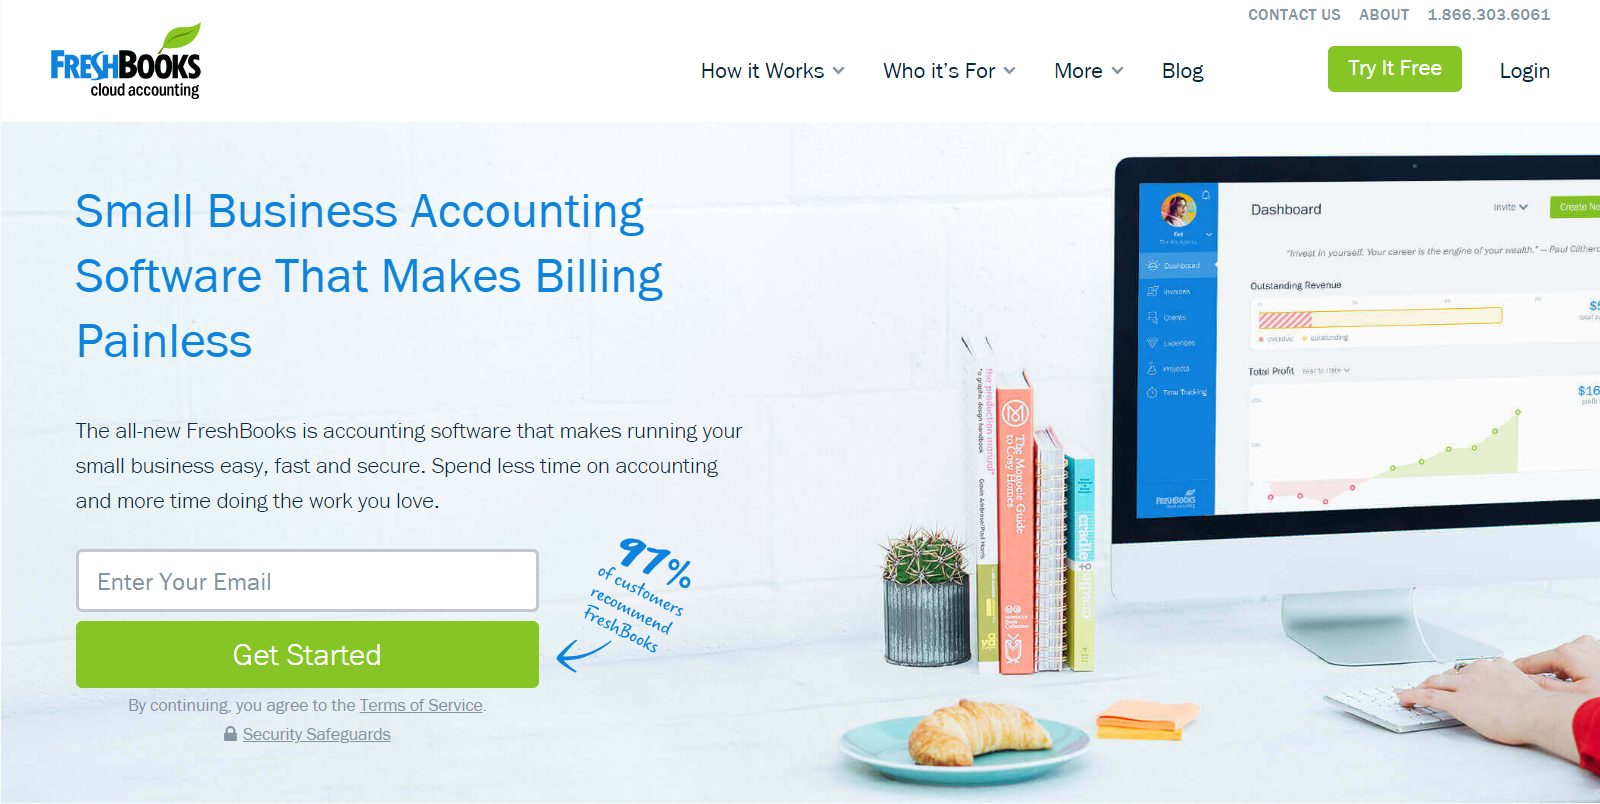 FreshBooks website image